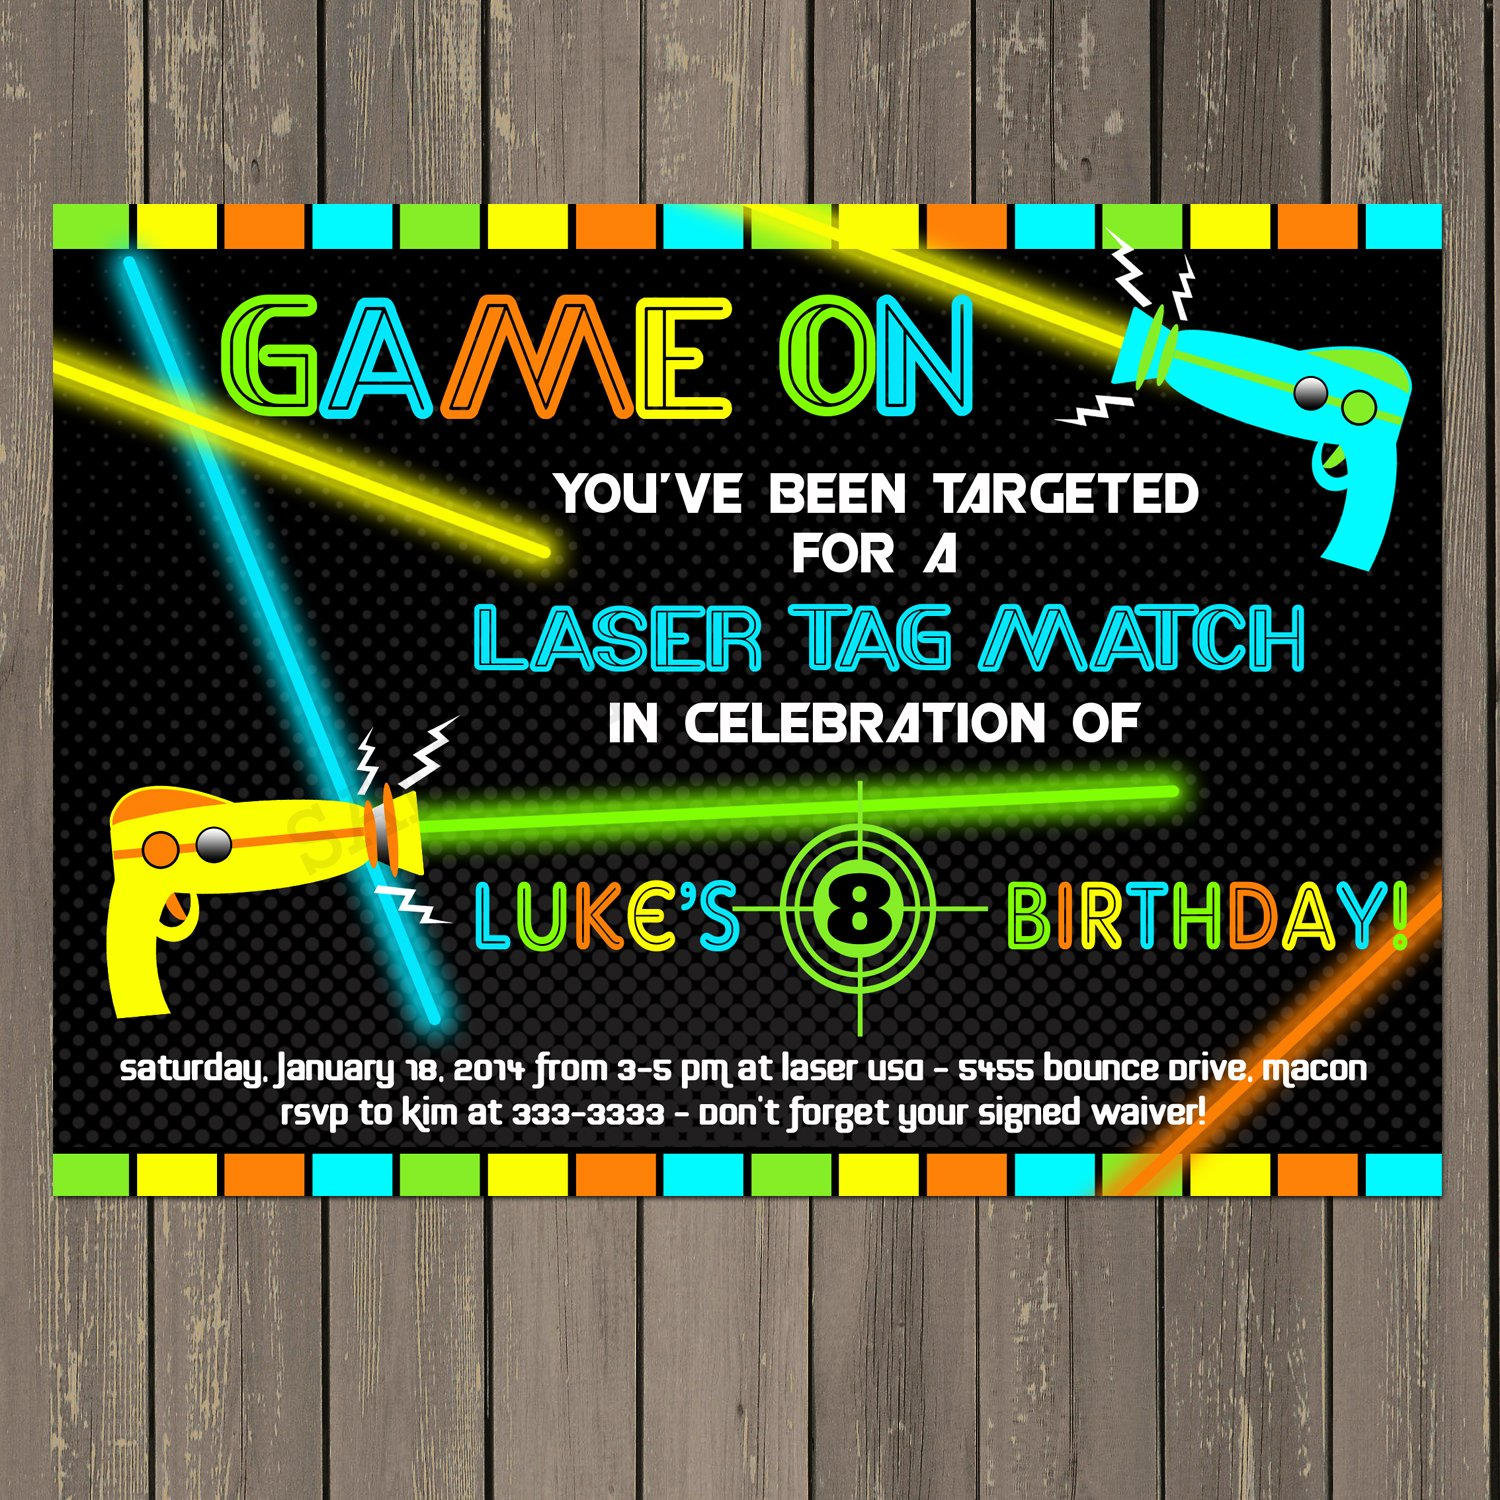 Amazon.com: Laser Tag Birthday Party Invitation with Laser Guns with ...